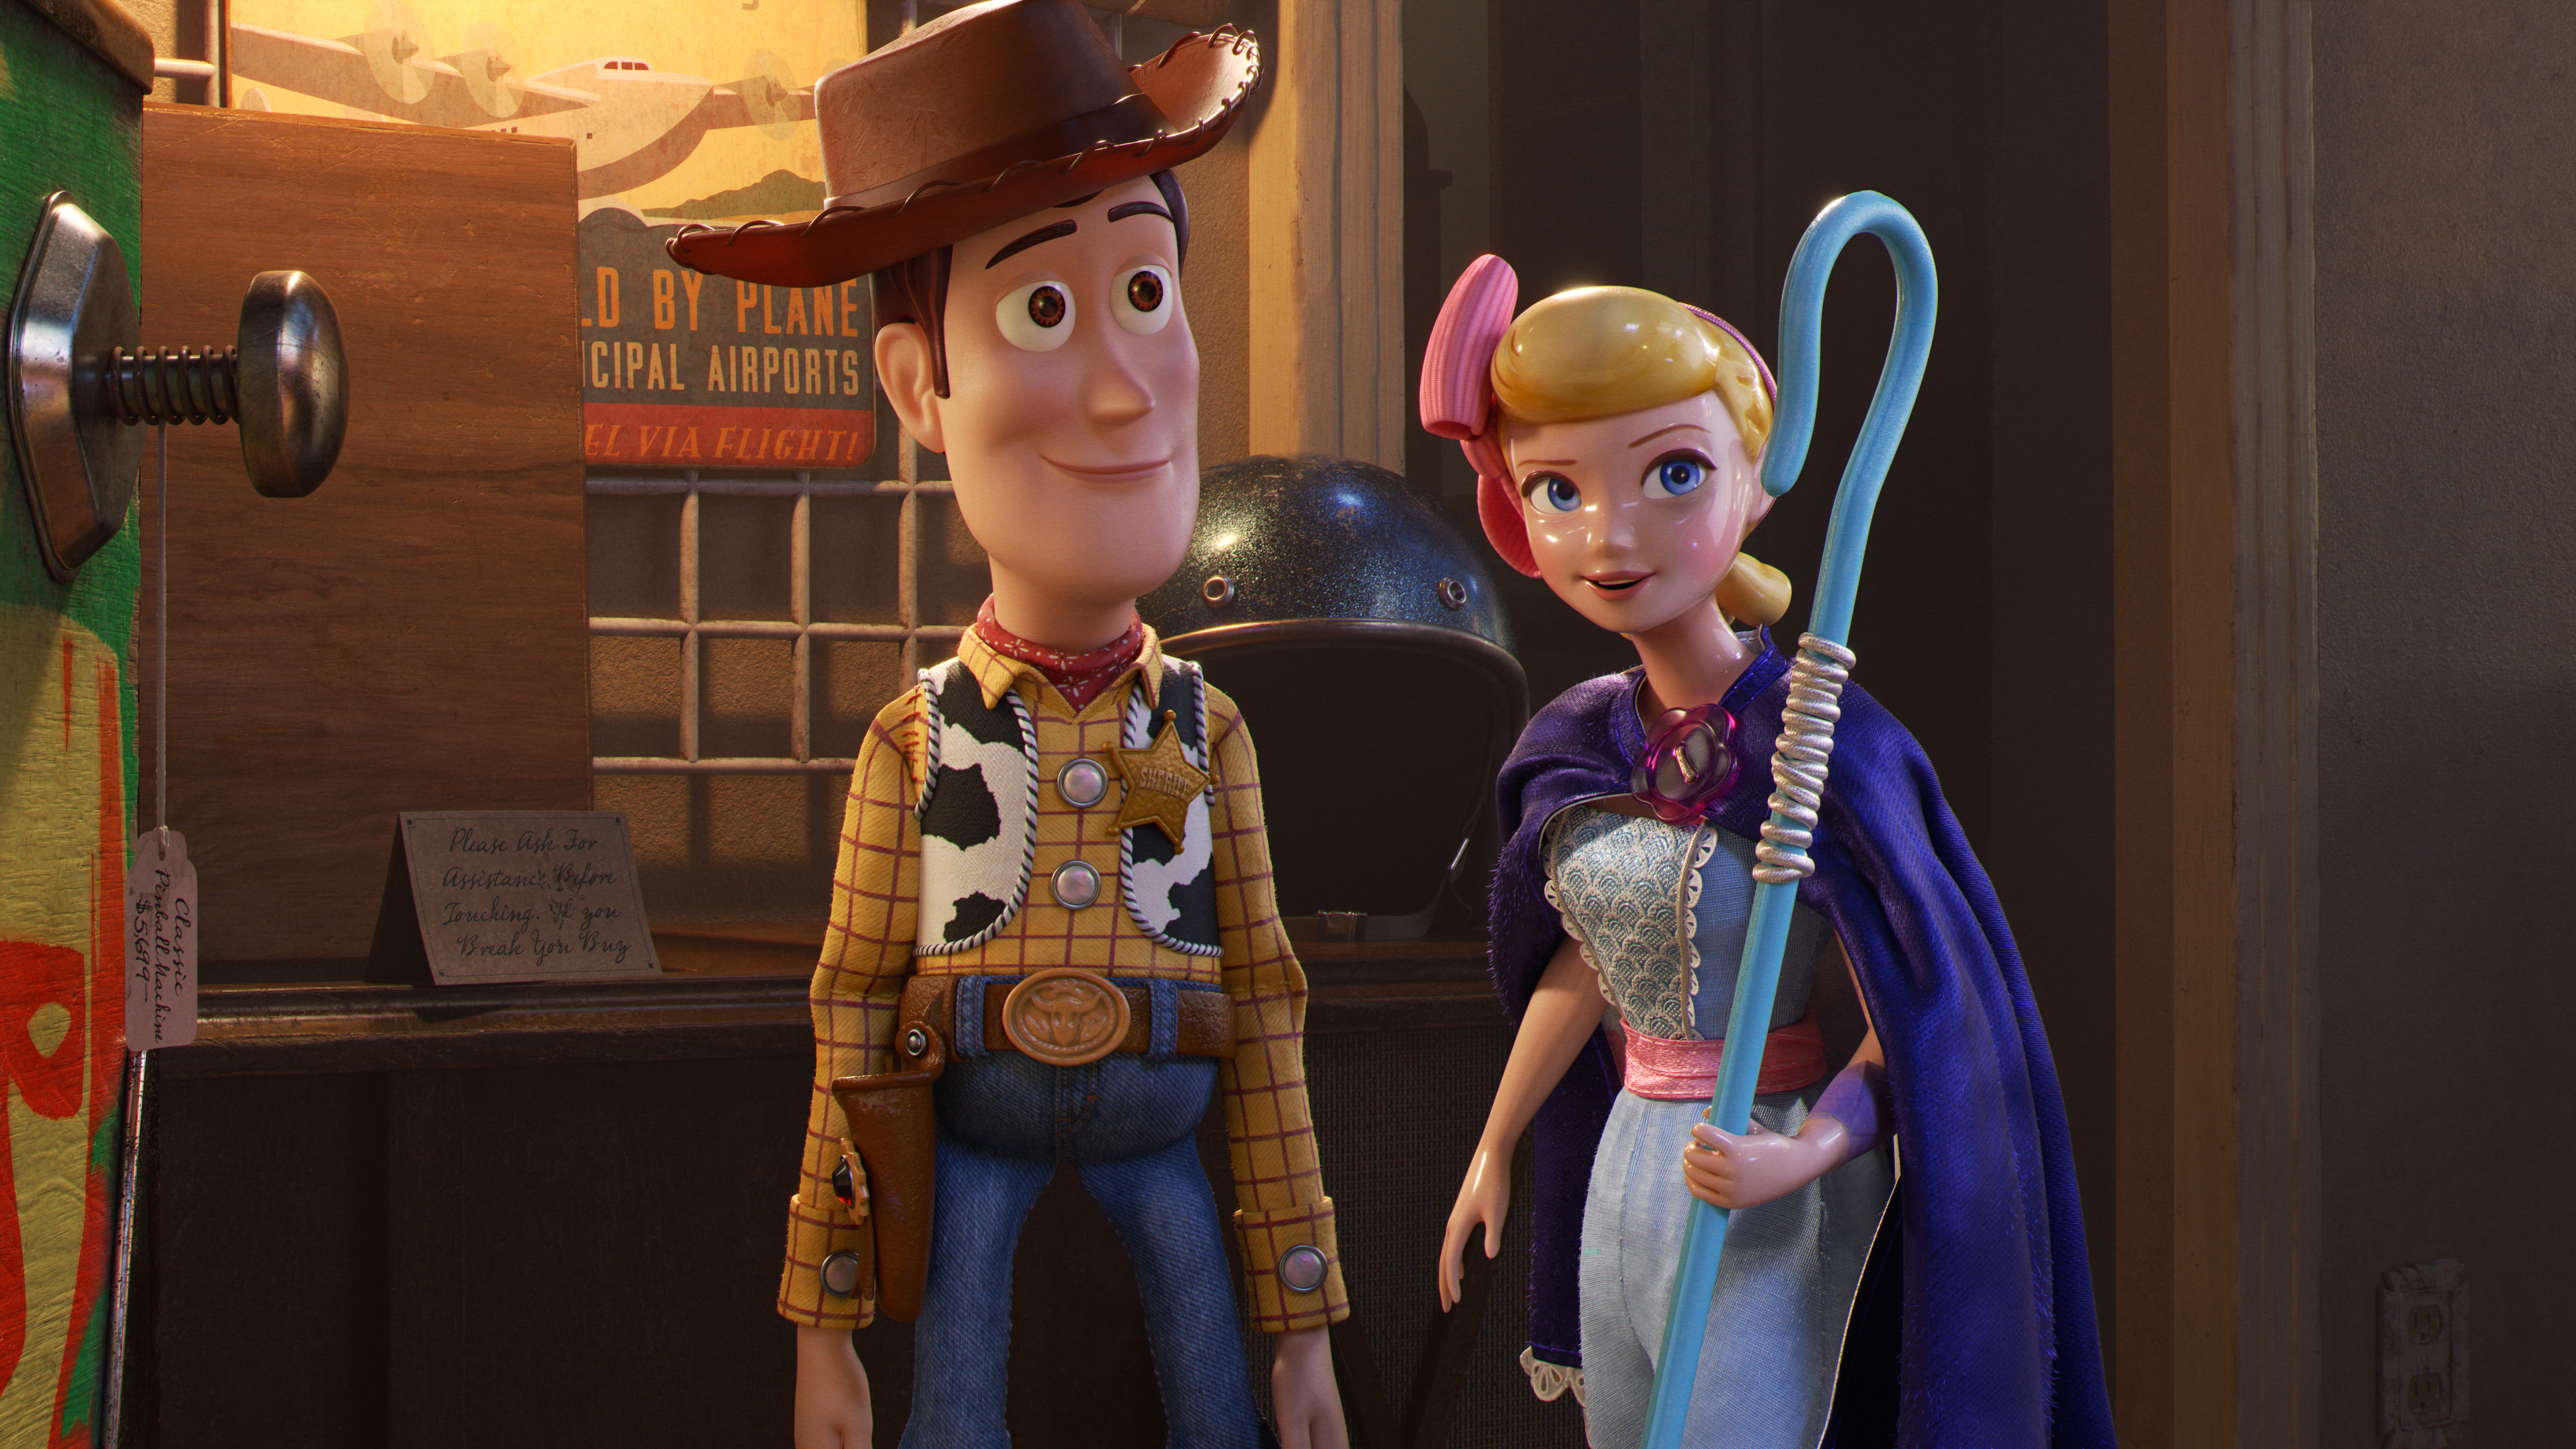 'Toy Story 4' Mixes Nostalgia And Existential Dread